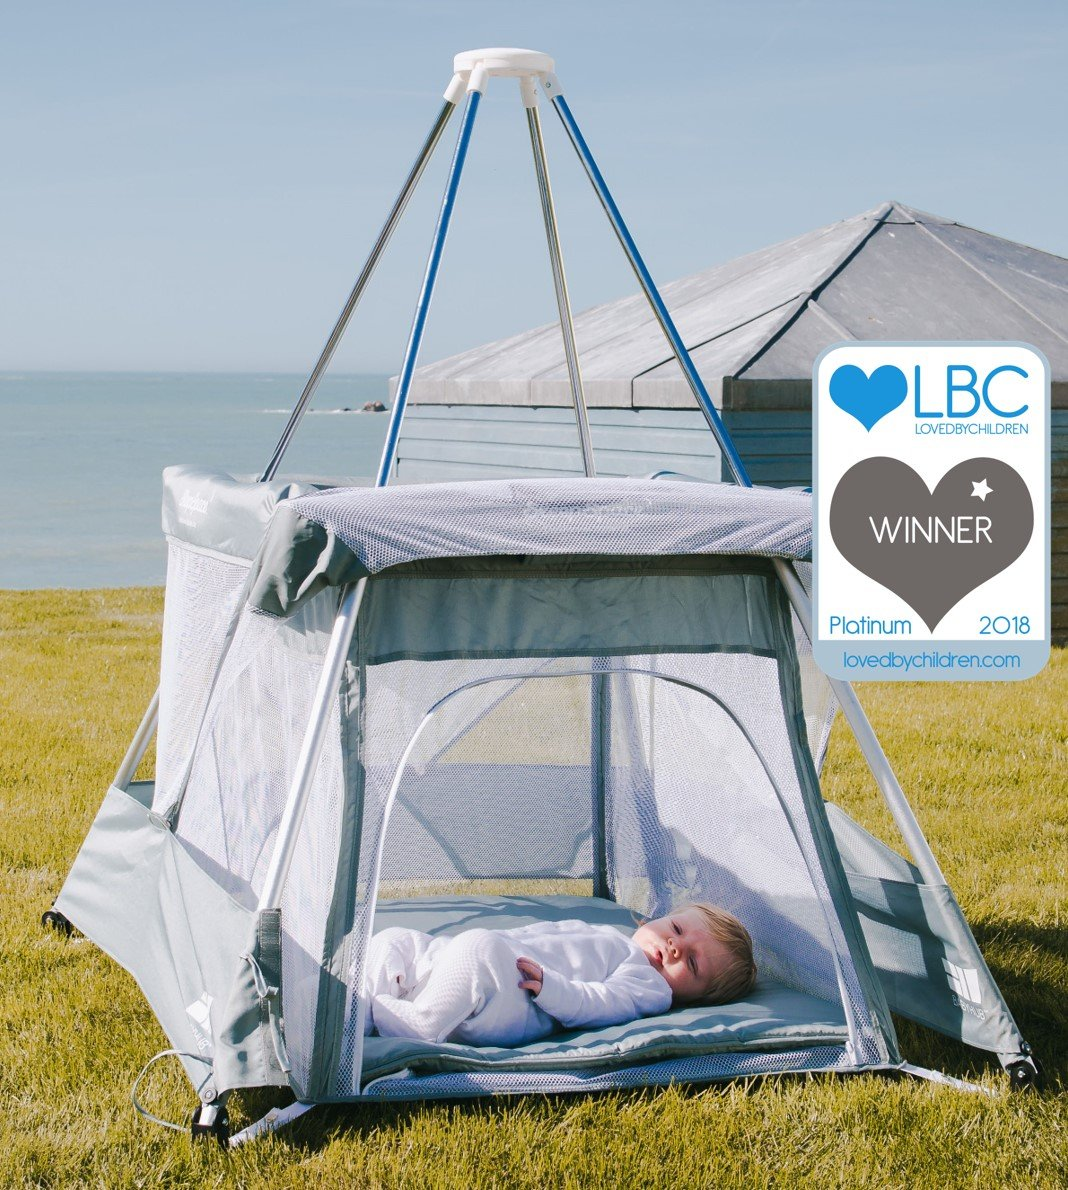 BabyHub SleepSpace Travel Cot with Mosquito Net, Grey BabyHub Three cots in one; use as a travel cot, mosquito proof space and reuse as a play tepee Includes extra mosquito net cover that can be securely in place Can be set up and moved even while holding a baby 4